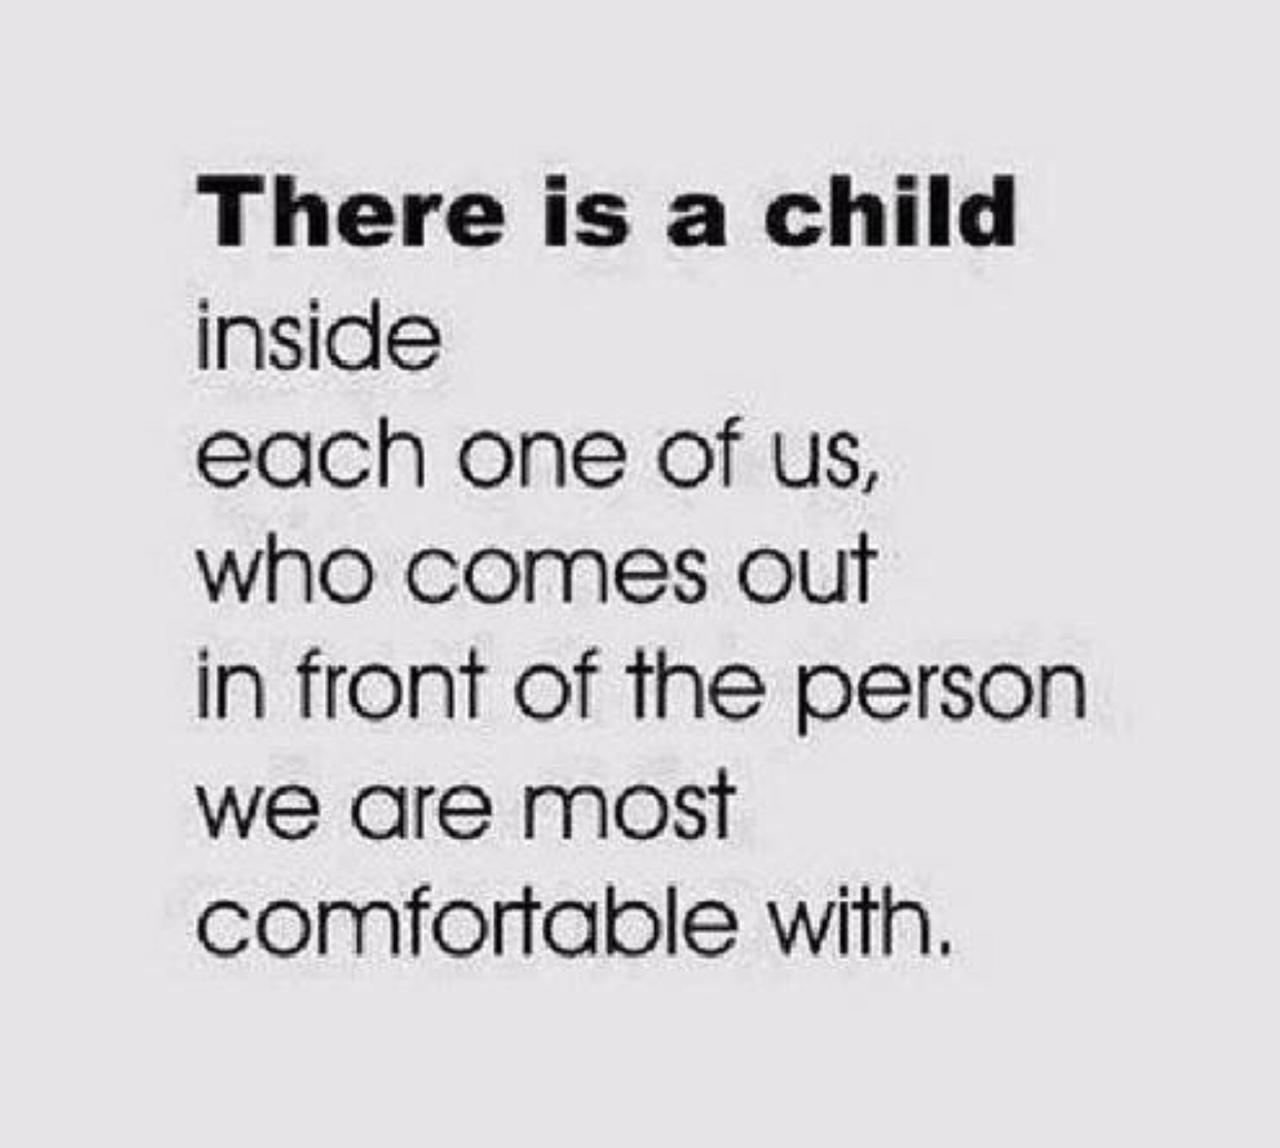 child and comfortable image